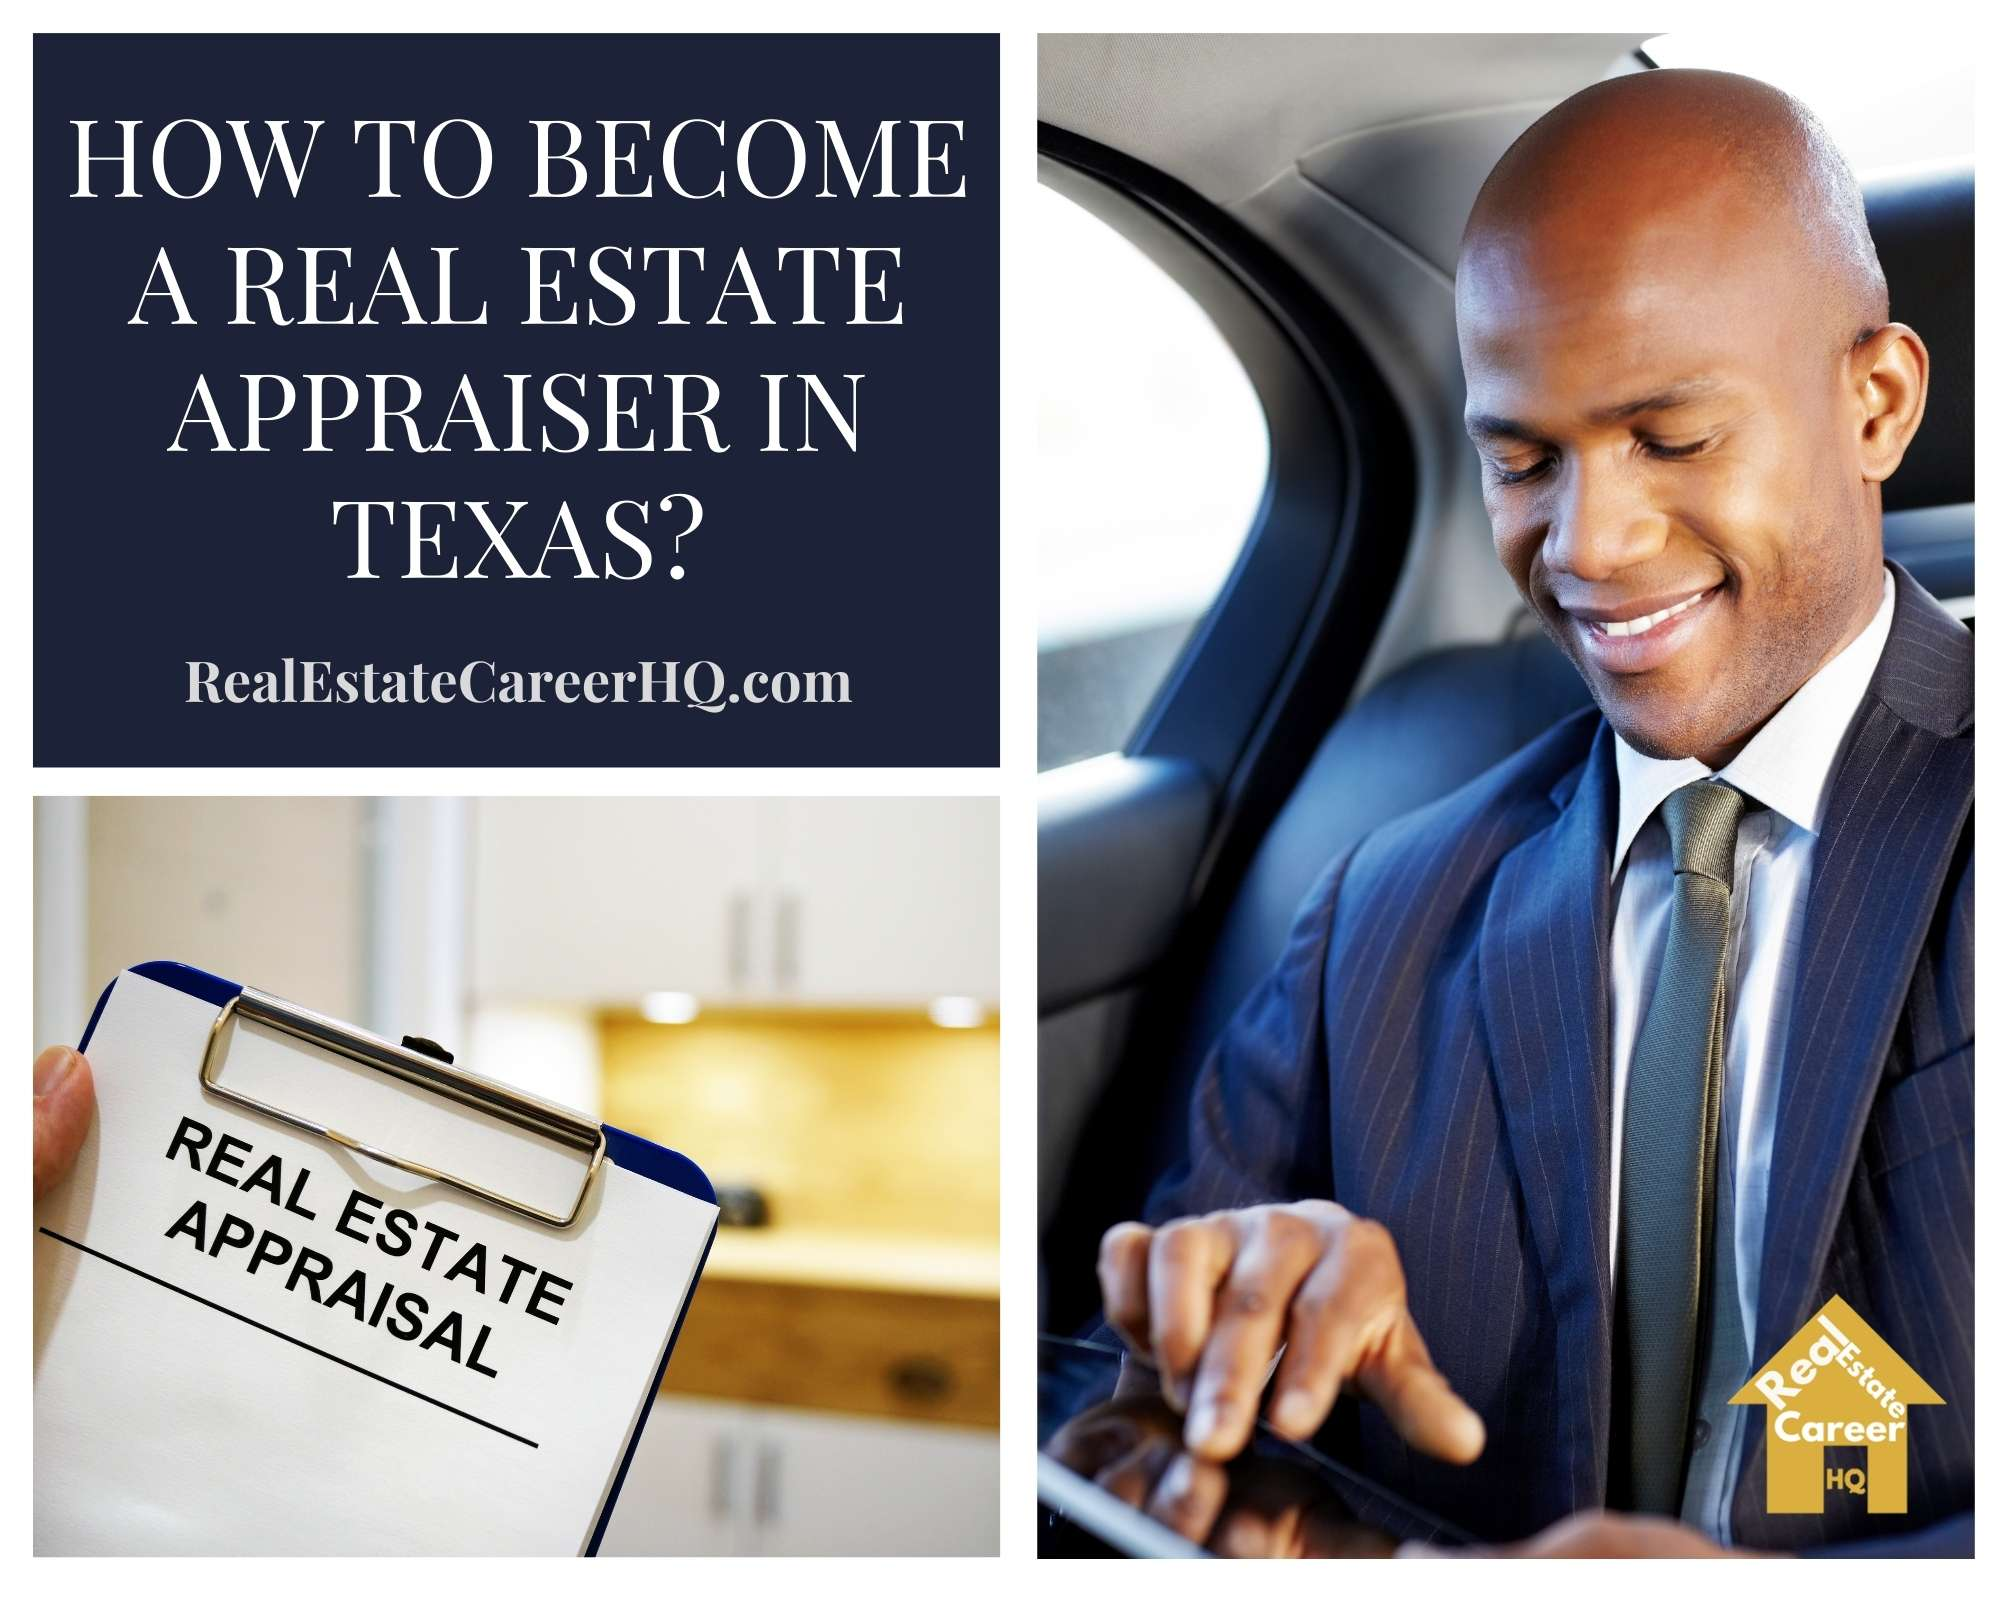 How to Become a Real Estate Appraiser in Texas